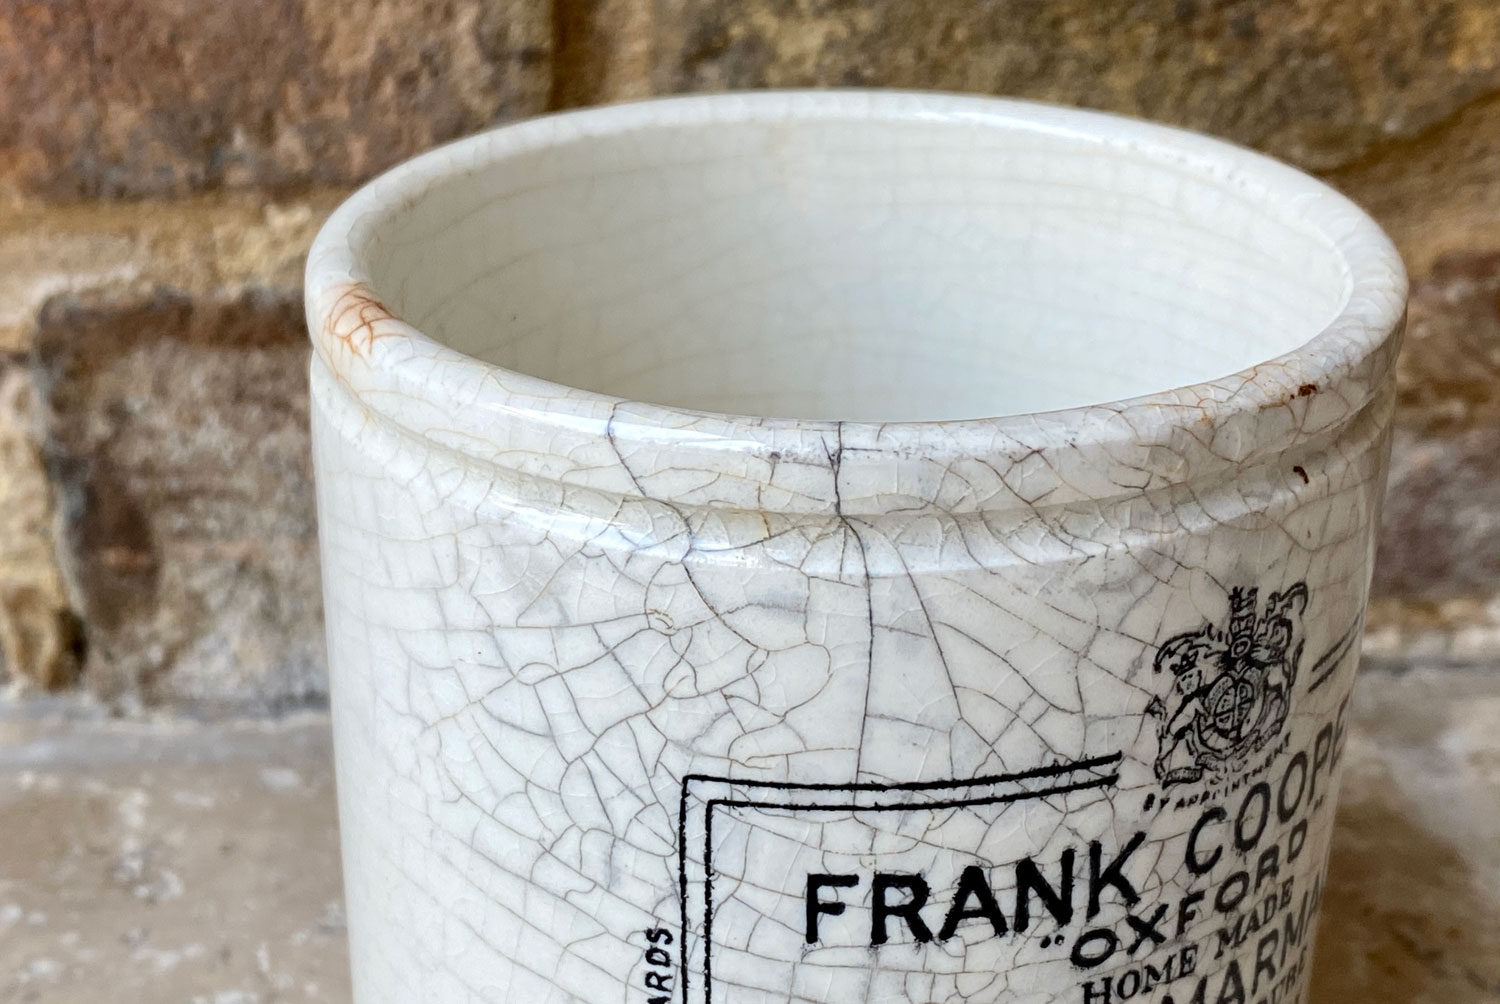 Antique Victorian white ironstone chubby 1 pound version of a Frank Cooper Oxford Seville Marmalade pot